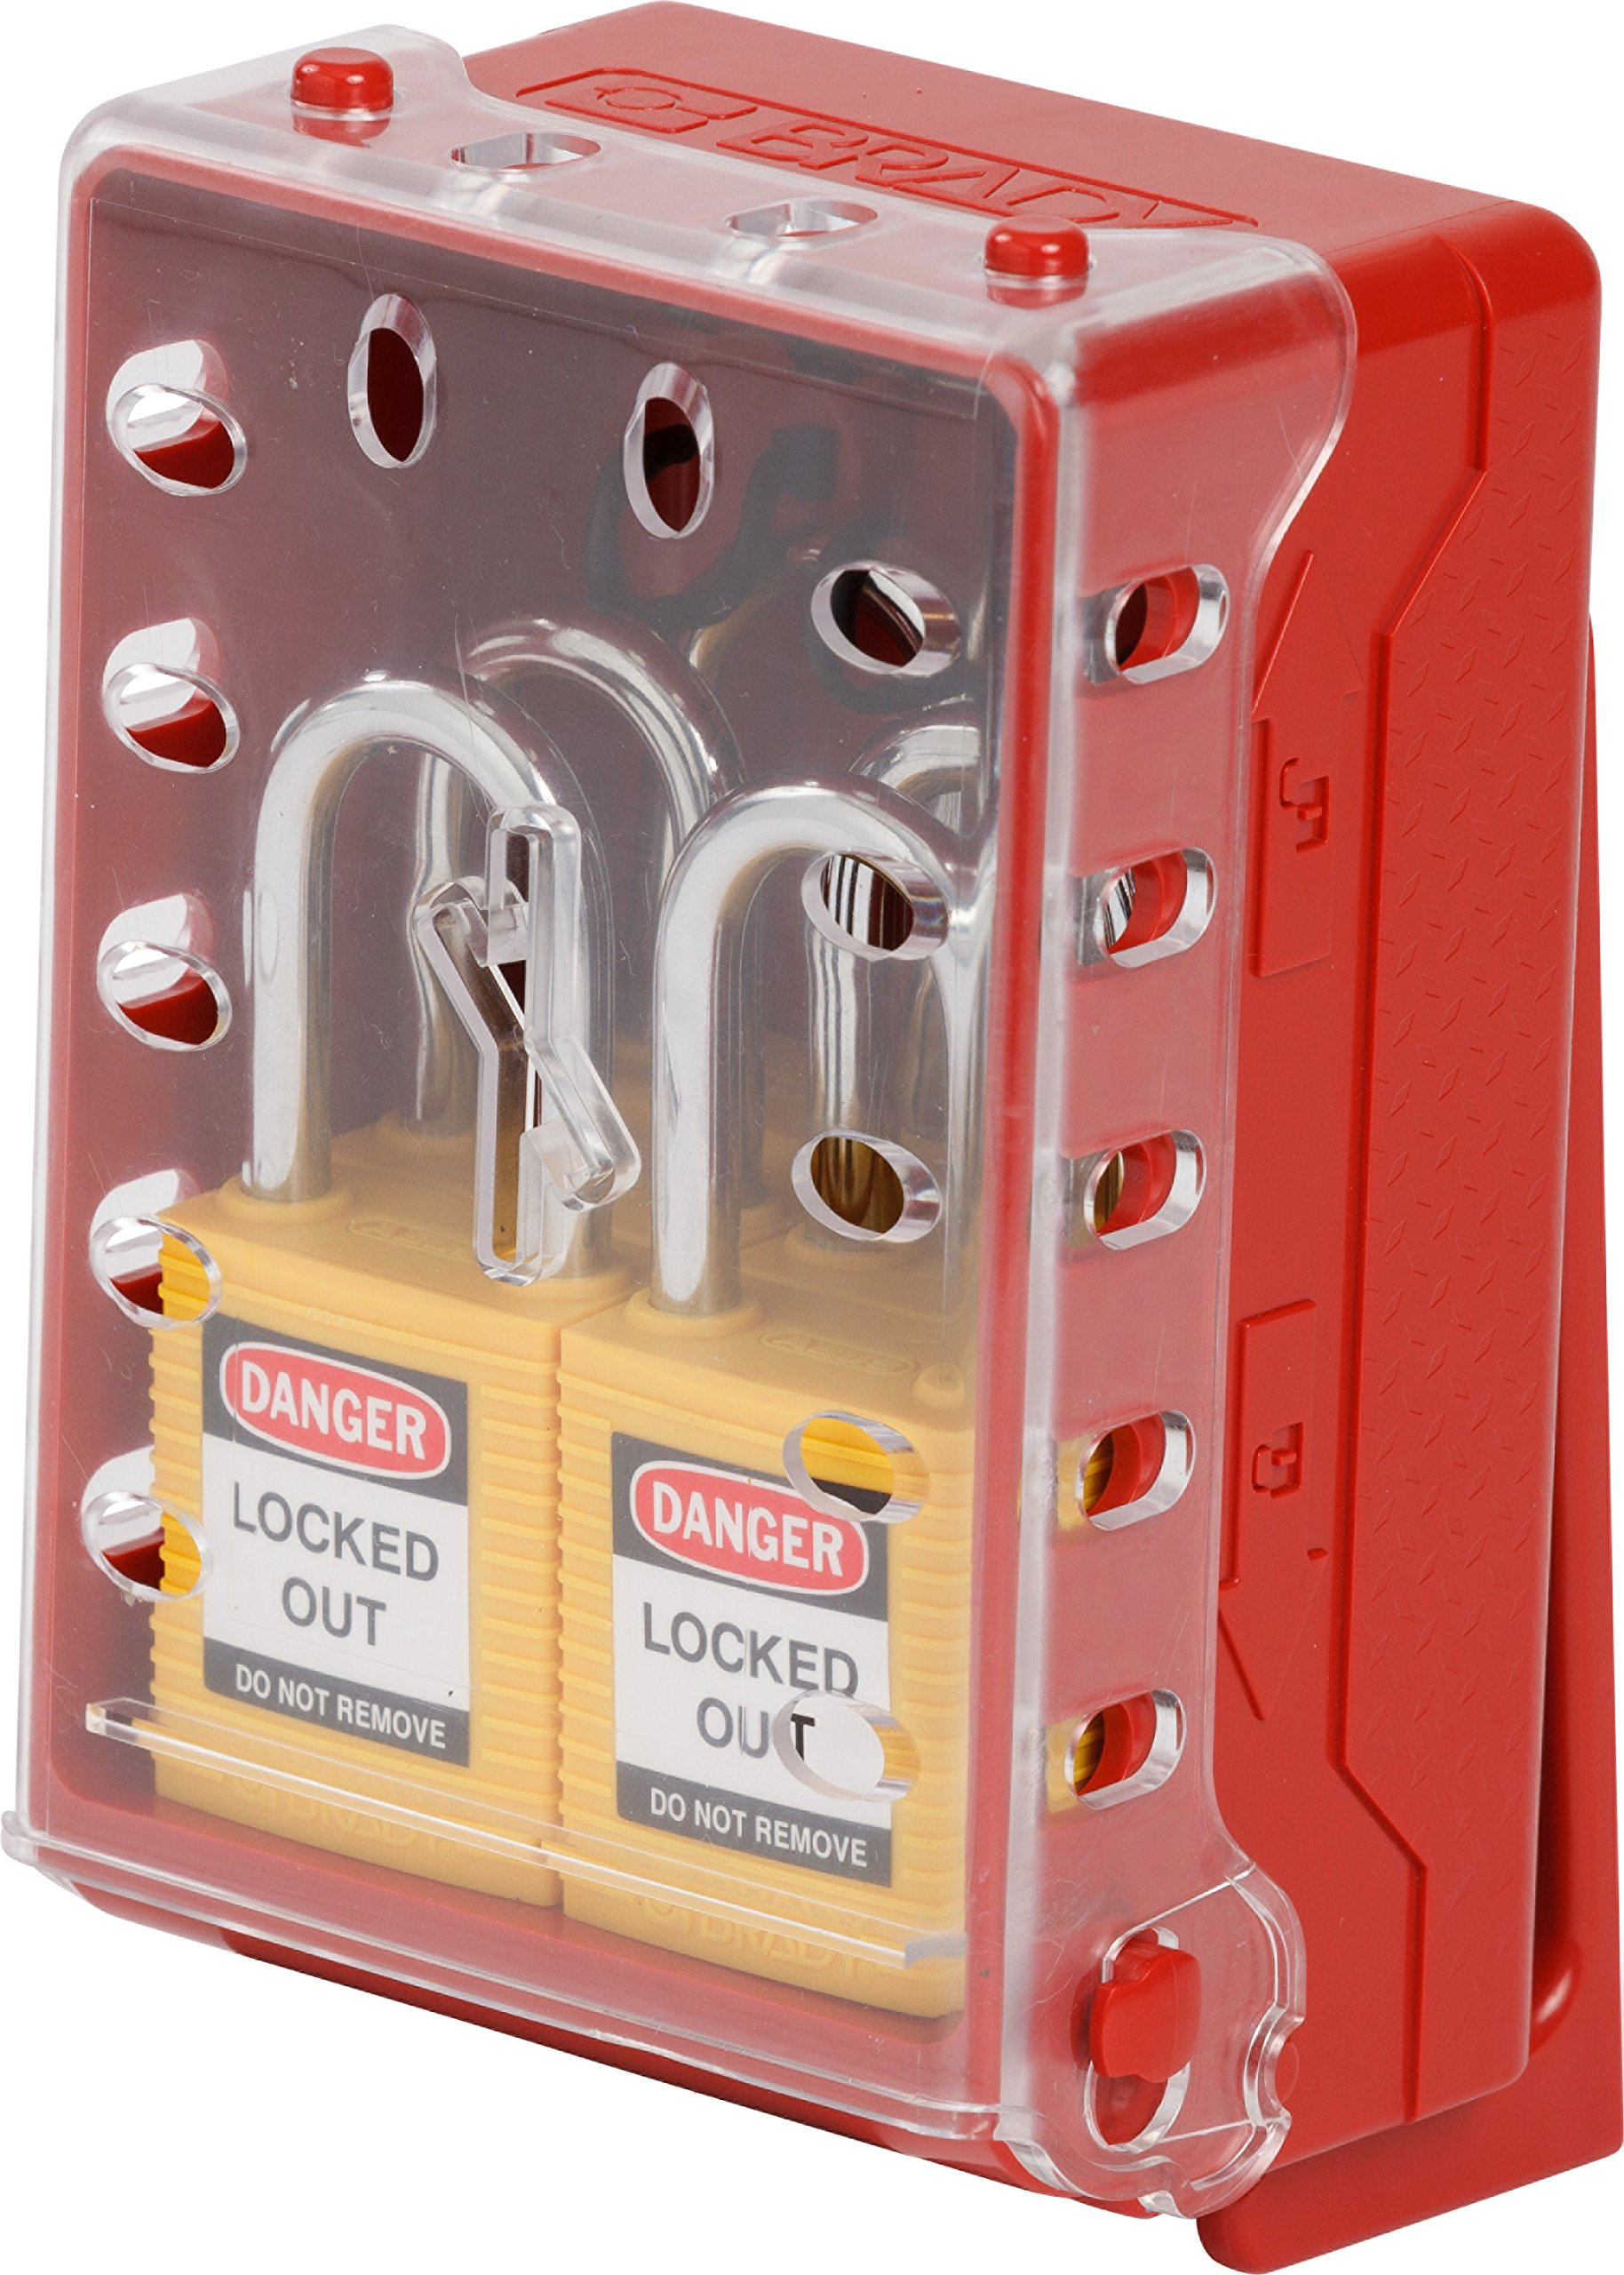 Brady Ultra Compact Lock Box - Wall-Mounted Lockout Tagout Lock Box, Includes 6 Yellow Keyed-Different Locks - Red - 149176